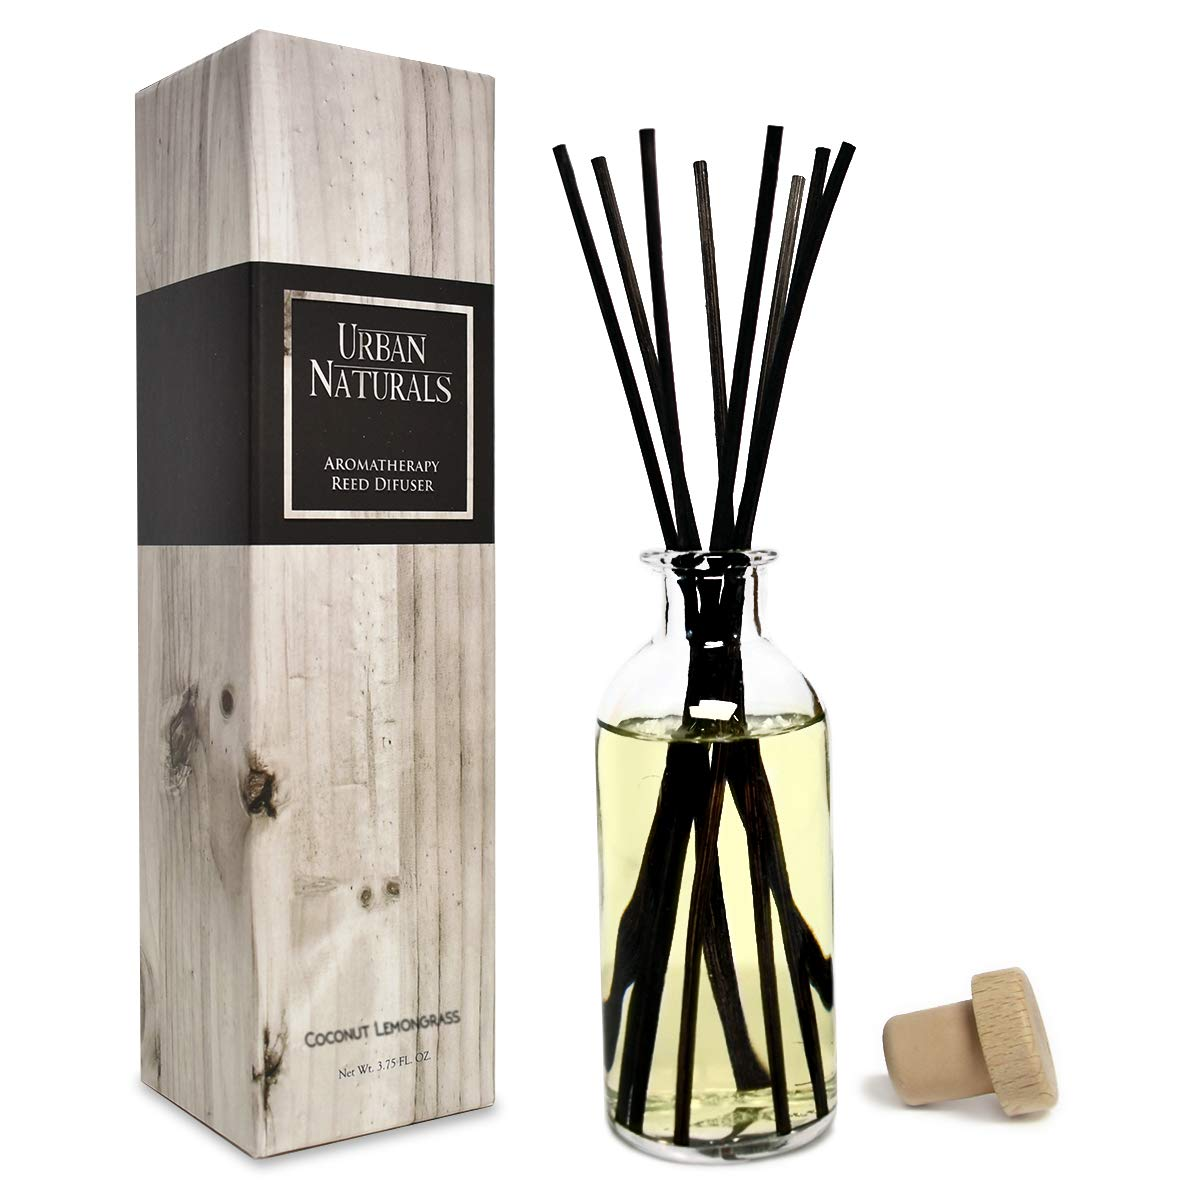 Urban Naturals Coconut Lemongrass Home Fragrance Reed Diffuser Oil Set | Tropical Blend of Lemongrass, Fresh Limes & Sweet Coconut Milk | Great Home Gift Idea! Vegan. Made in The USA